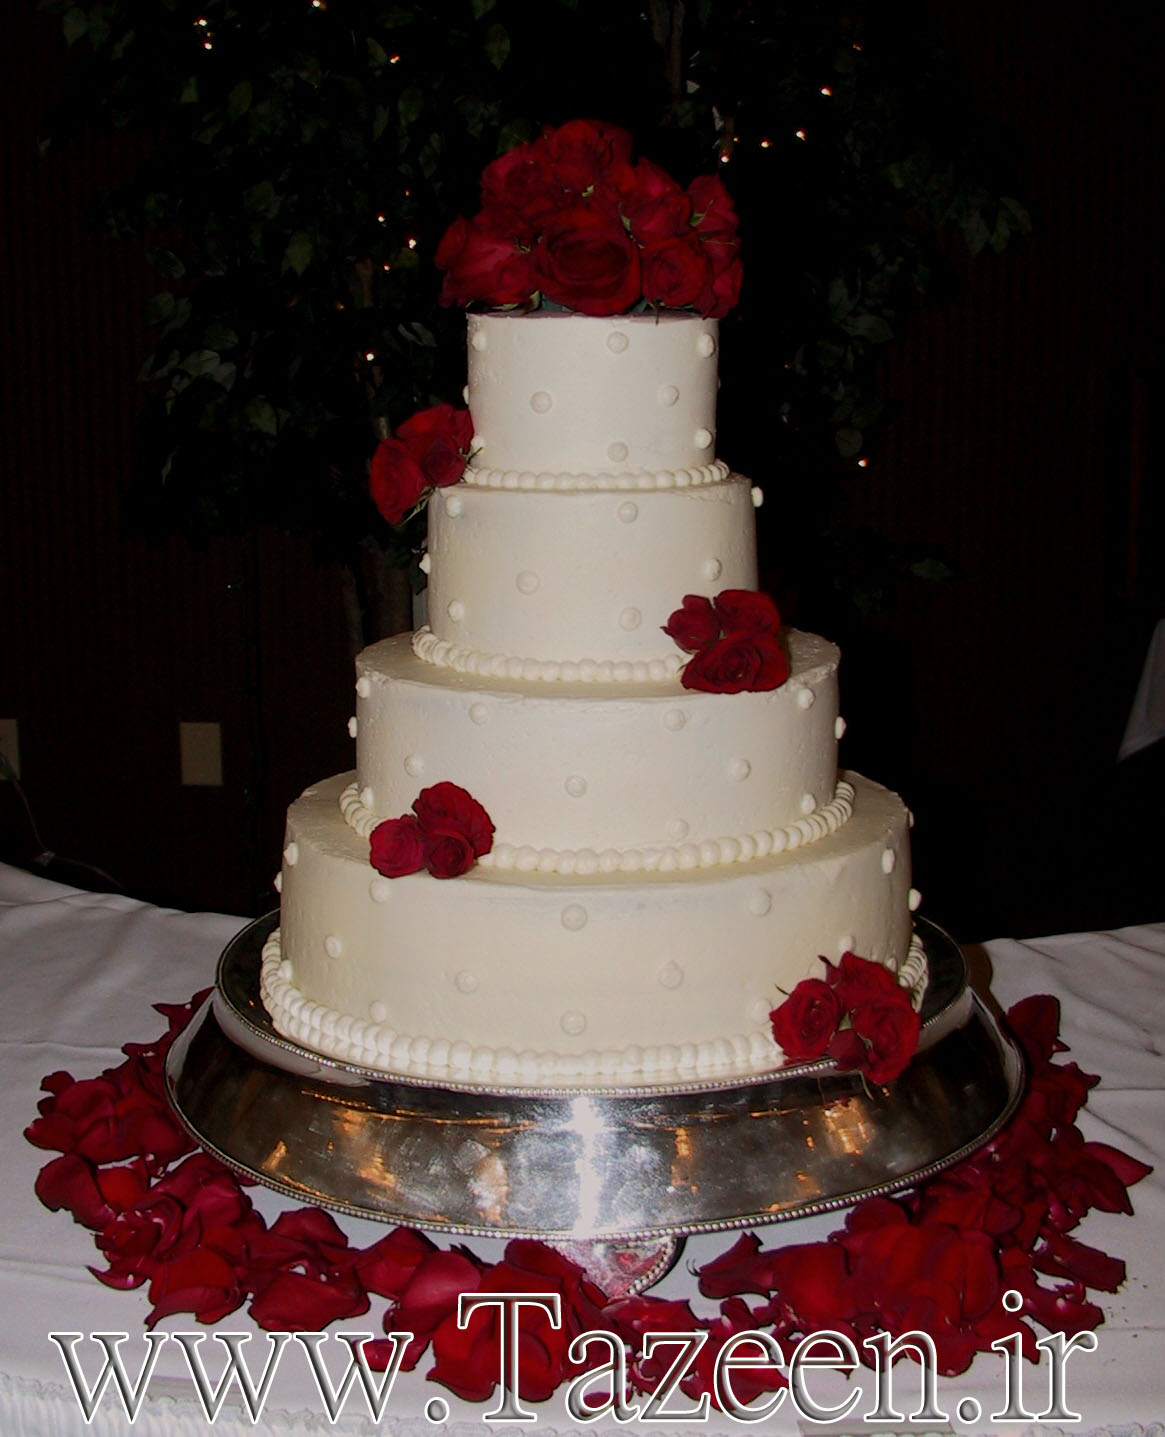 www.tazeen.ir Red-Wedding-Cake-3